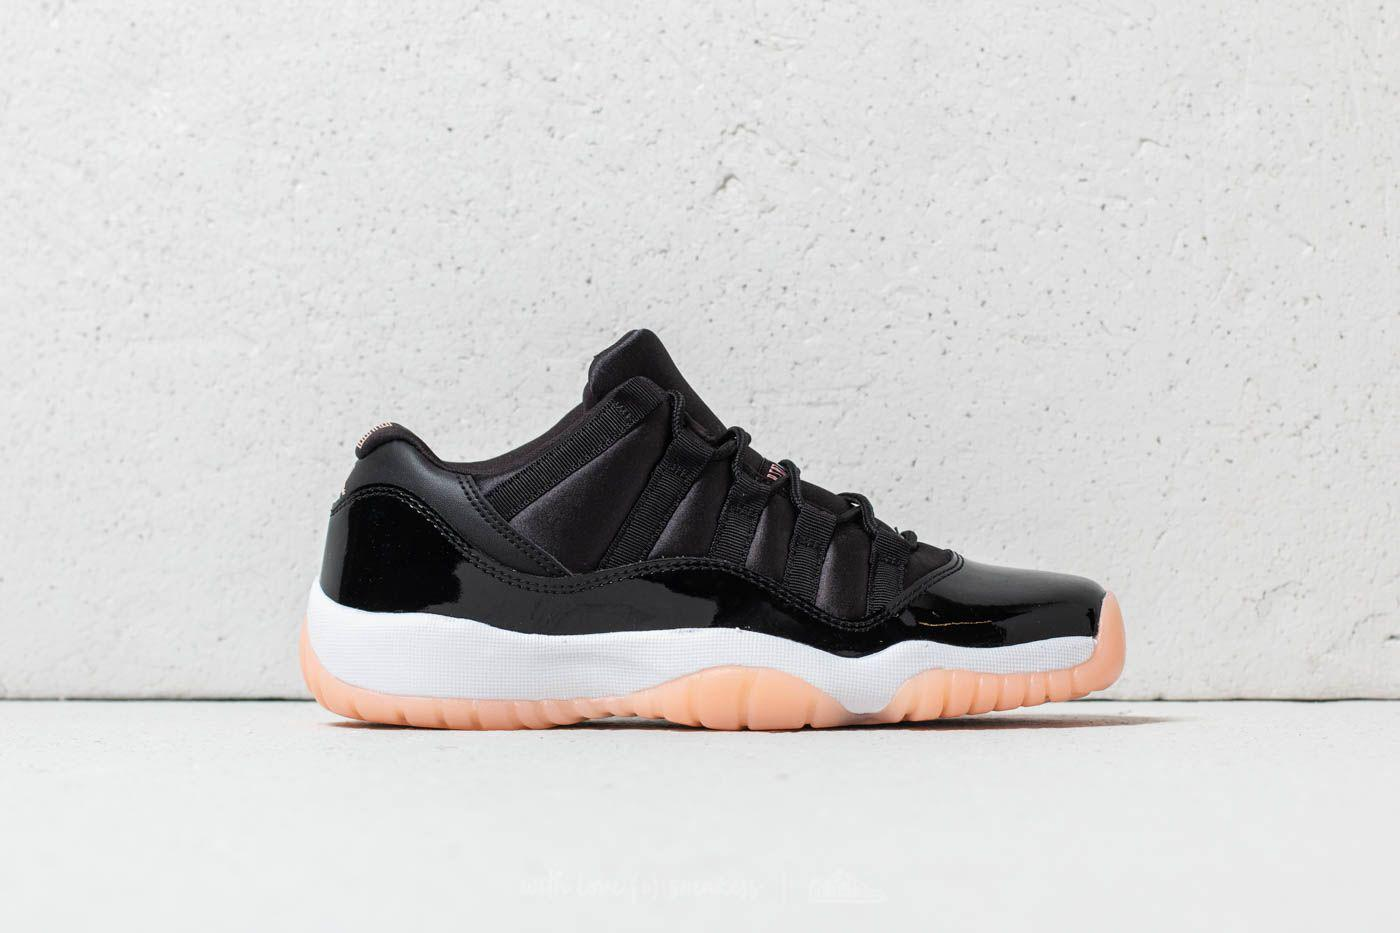 843a205d3f5a47 Lyst - Nike Air 11 Retro Low Gg Black  Bleached Coral-white in Black